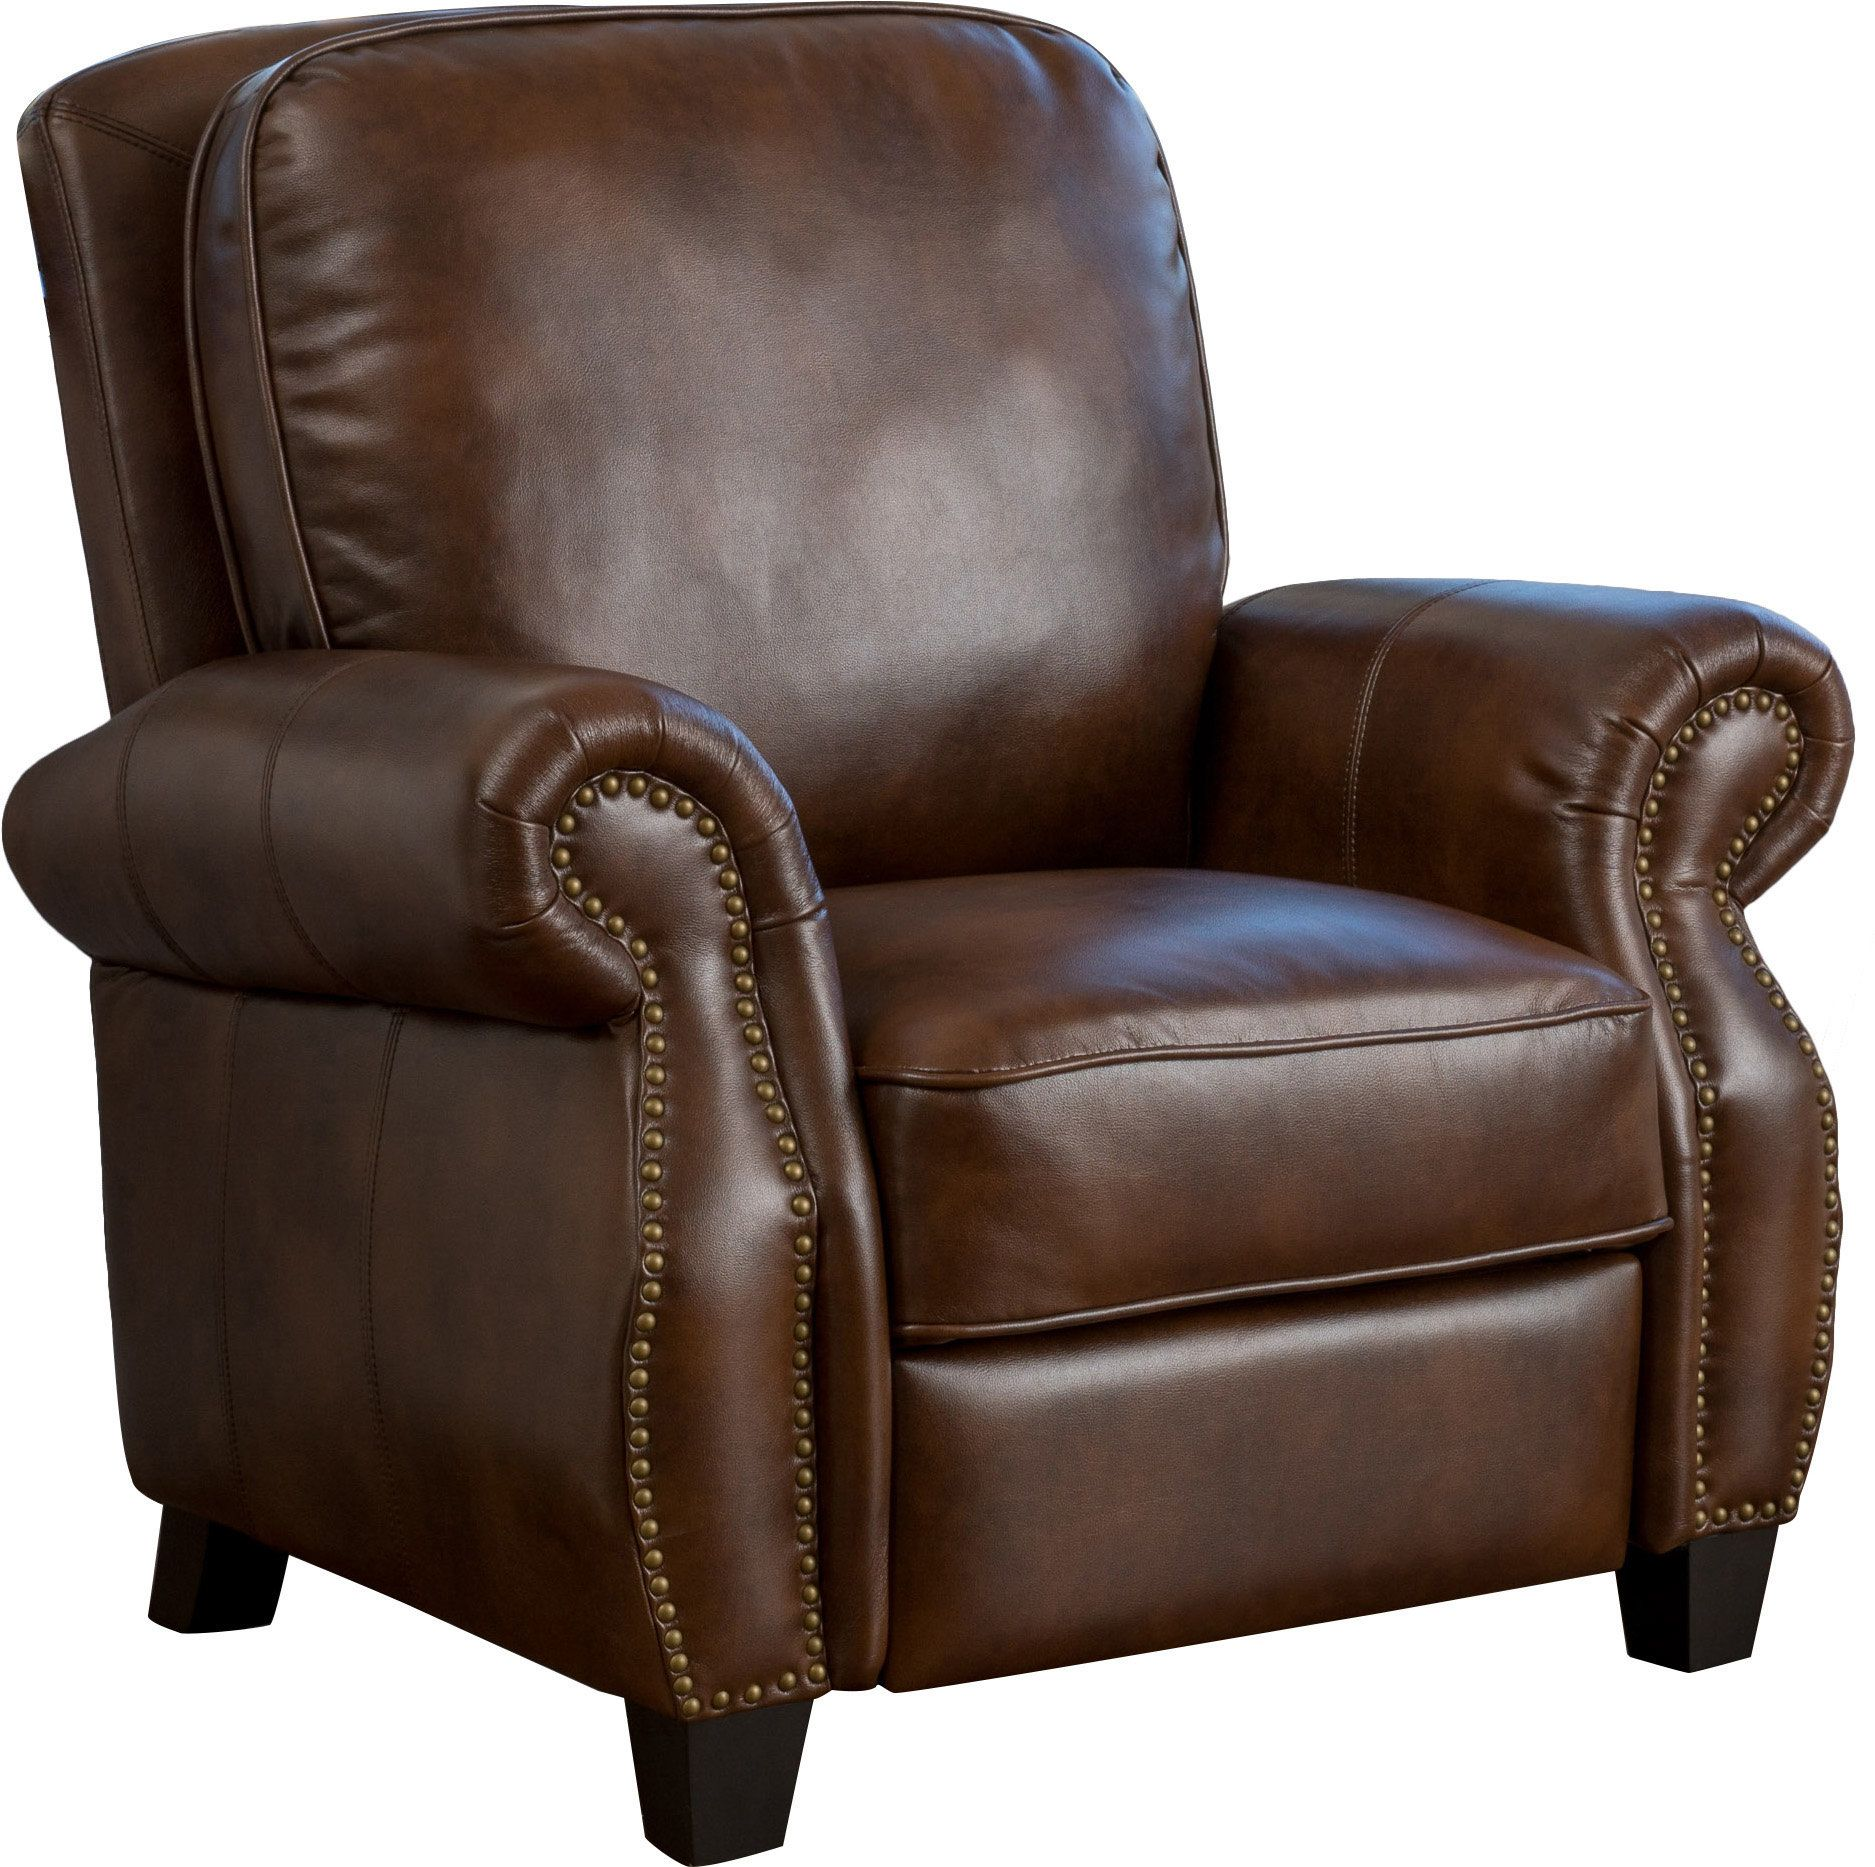 ricardo barn italian pottery frame aptdeco macys recliner s catalog loveseat leather barns macy